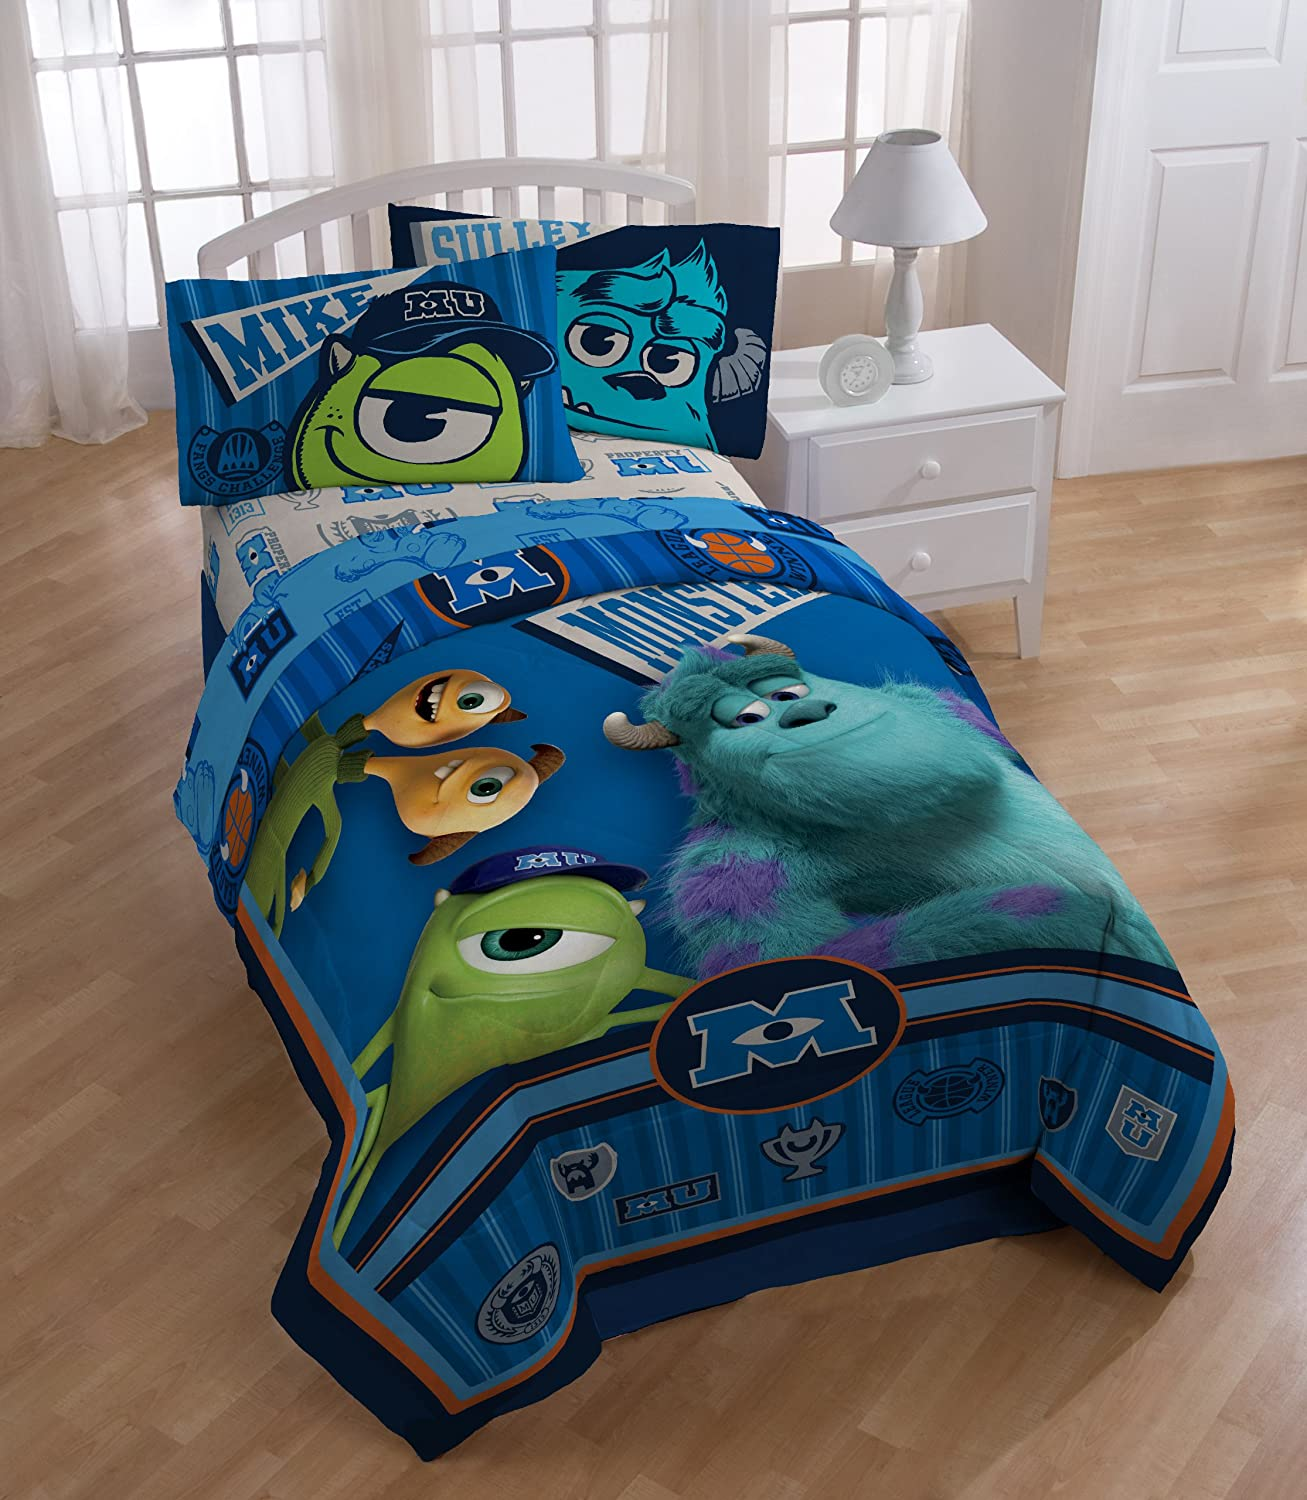 Disney Monsters Inc Twin Bed Comforter Scare University